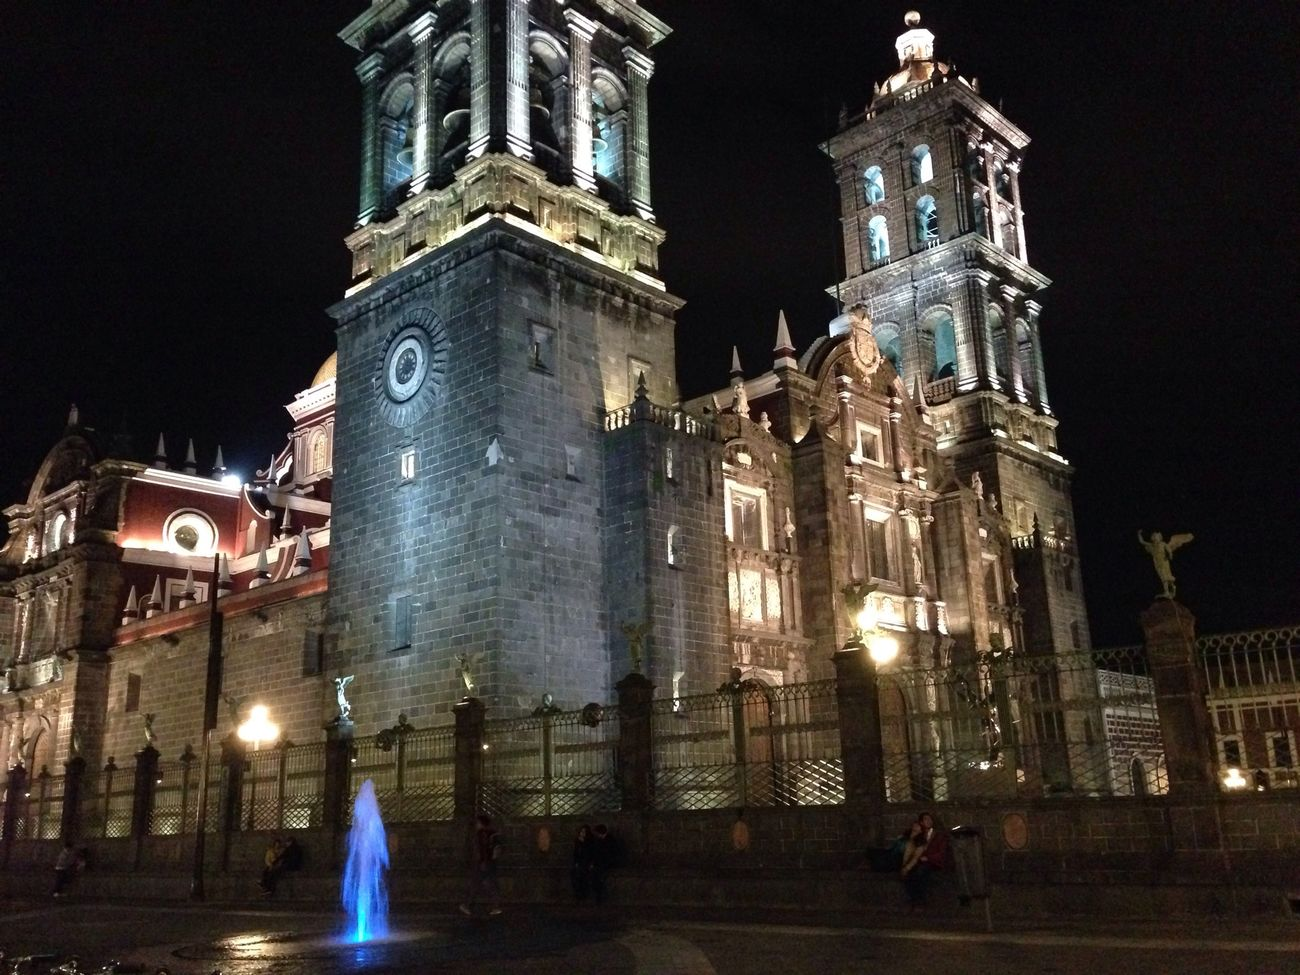 Catedral Puebla De Zaragoza Church Architecture Night Lights Arhitecture Taking Photos Discover Your City